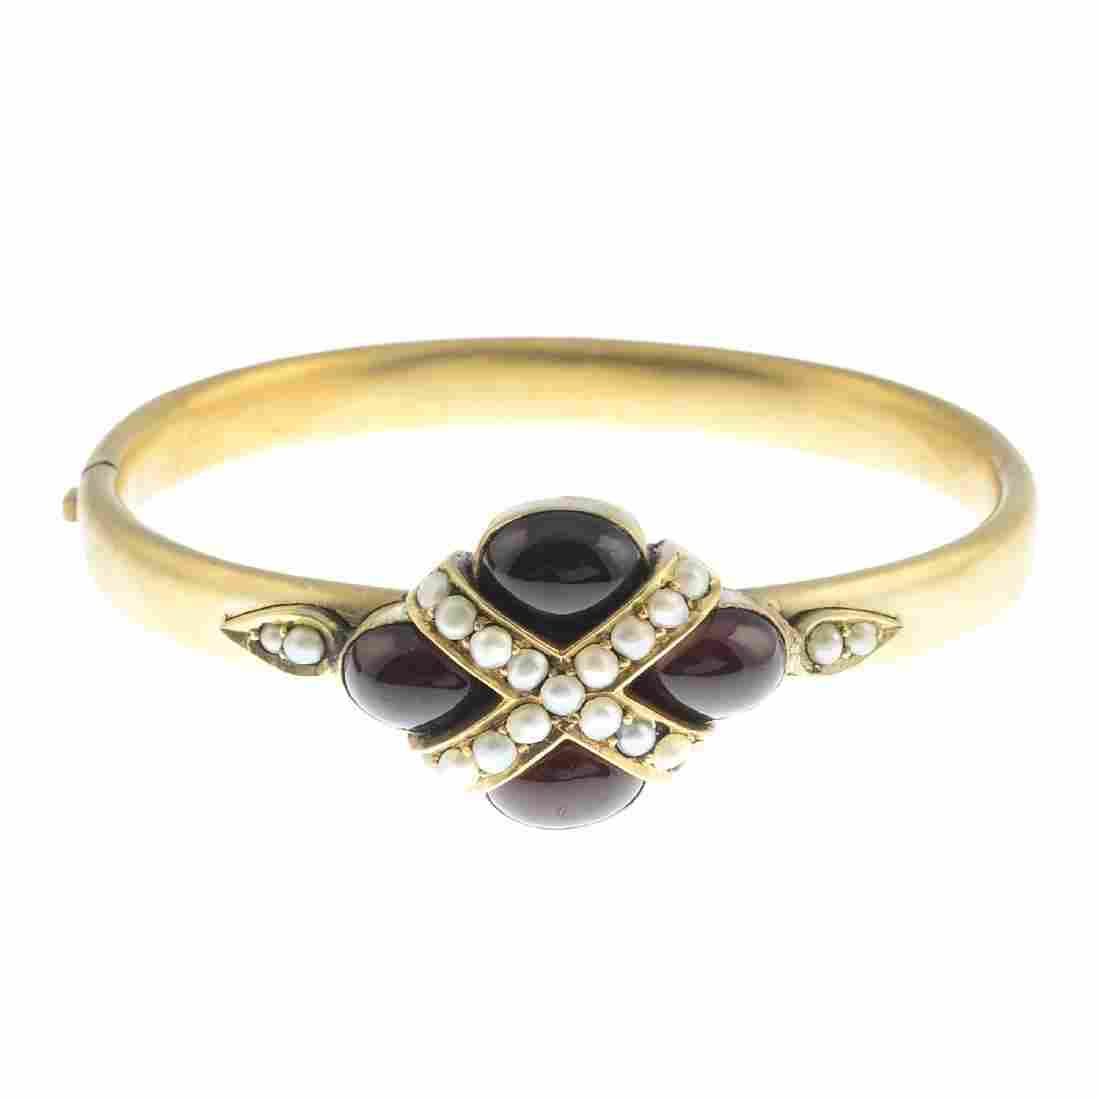 A late Victorian gold garnet and split pearl bangle.